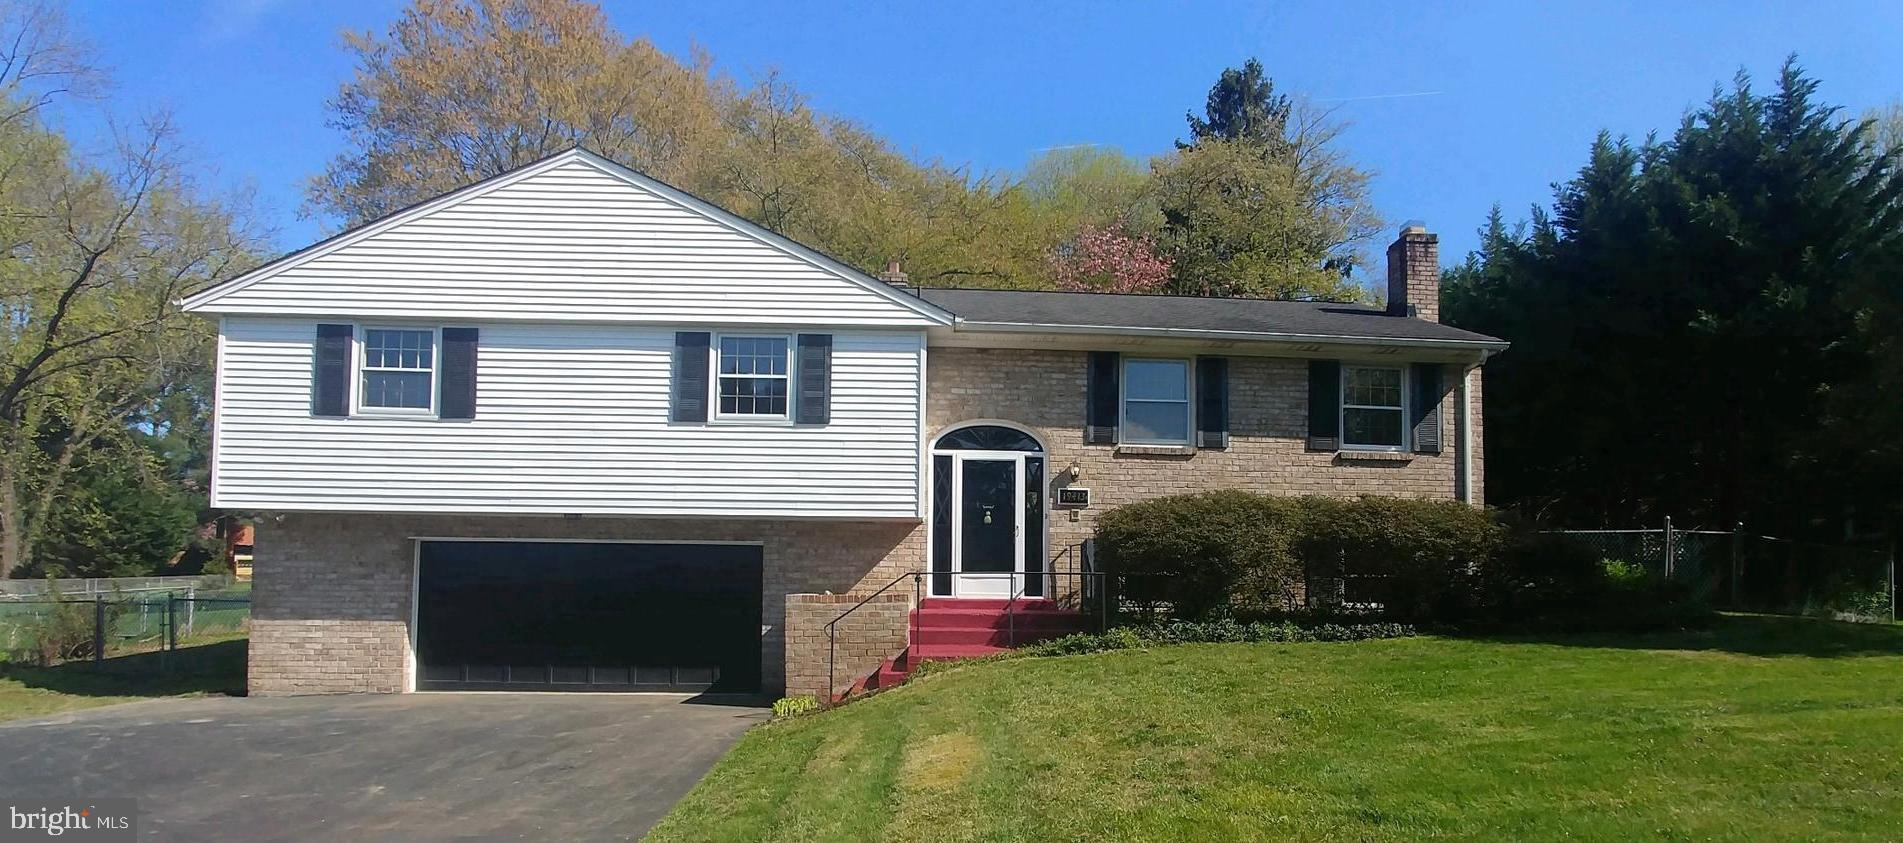 Lovely updated Split Foyer Home perfectly situated near Olney Mill Neighborhood and Regional Parks &